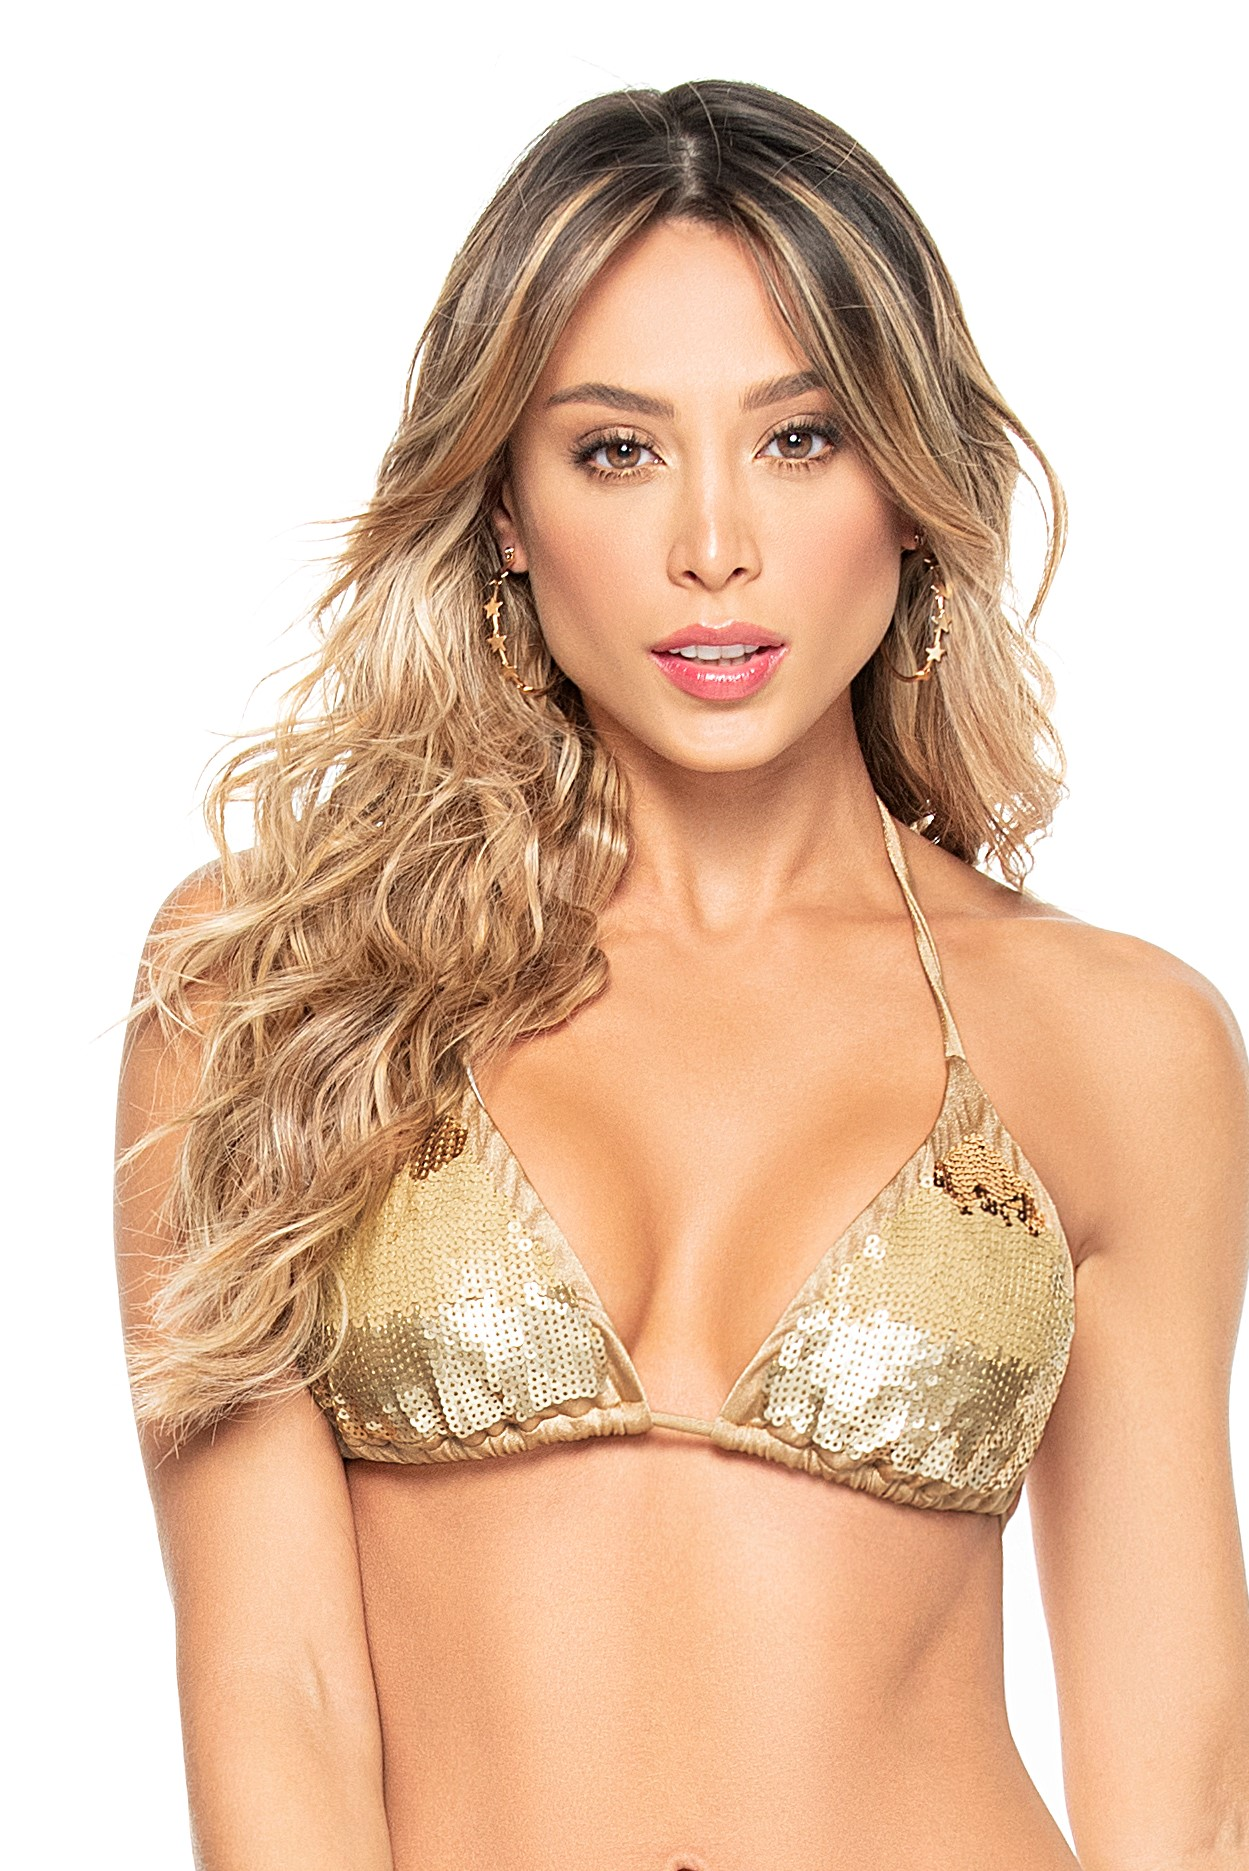 Phax Bella Brasil Golden Triangle Bikini Top